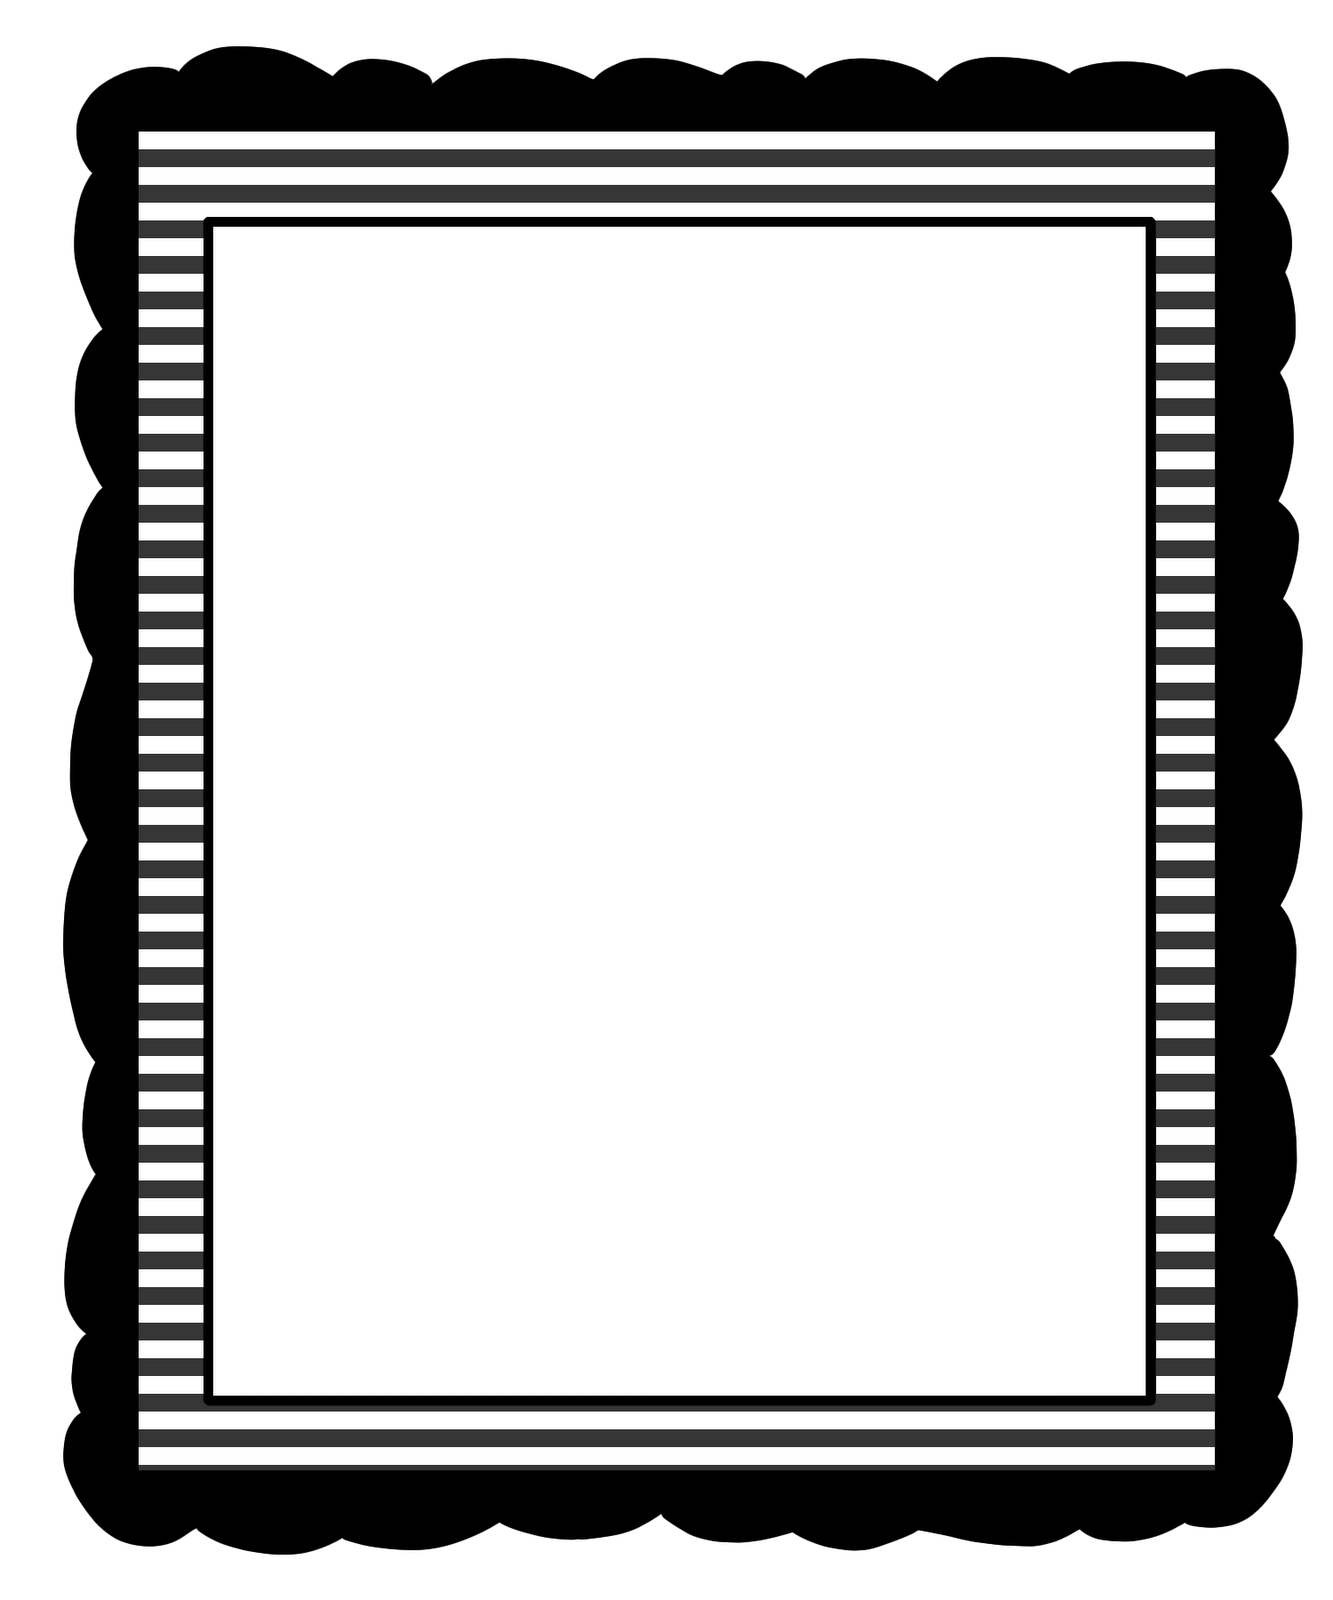 Black and white stripes borders clipart free image free download Free Striped Borders Cliparts, Download Free Clip Art, Free Clip Art ... image free download